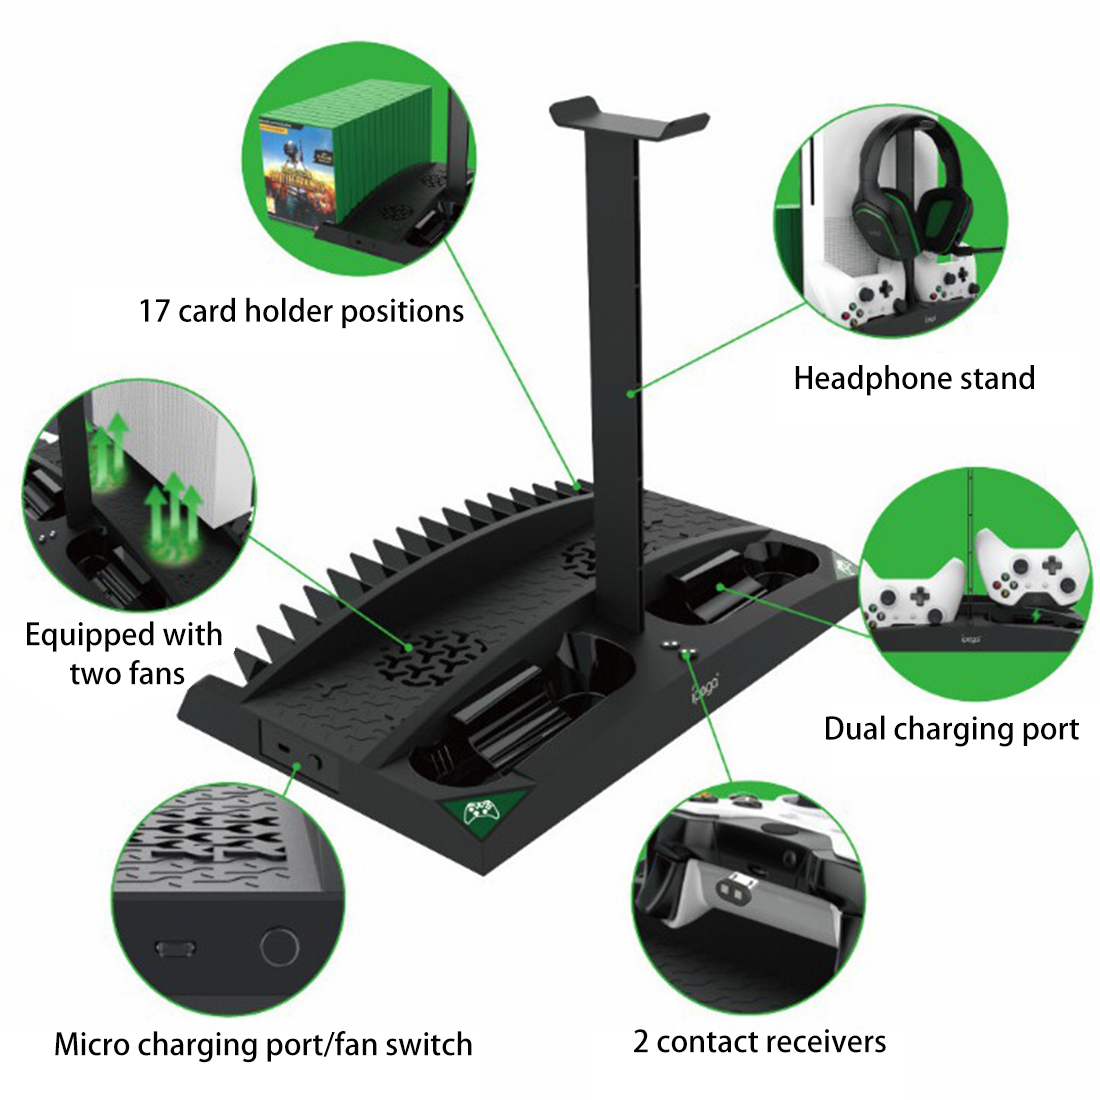 6-in-1 Vertical Stand Cooler Cooling Fan with Disc Rack for XBOX ONE/S/X